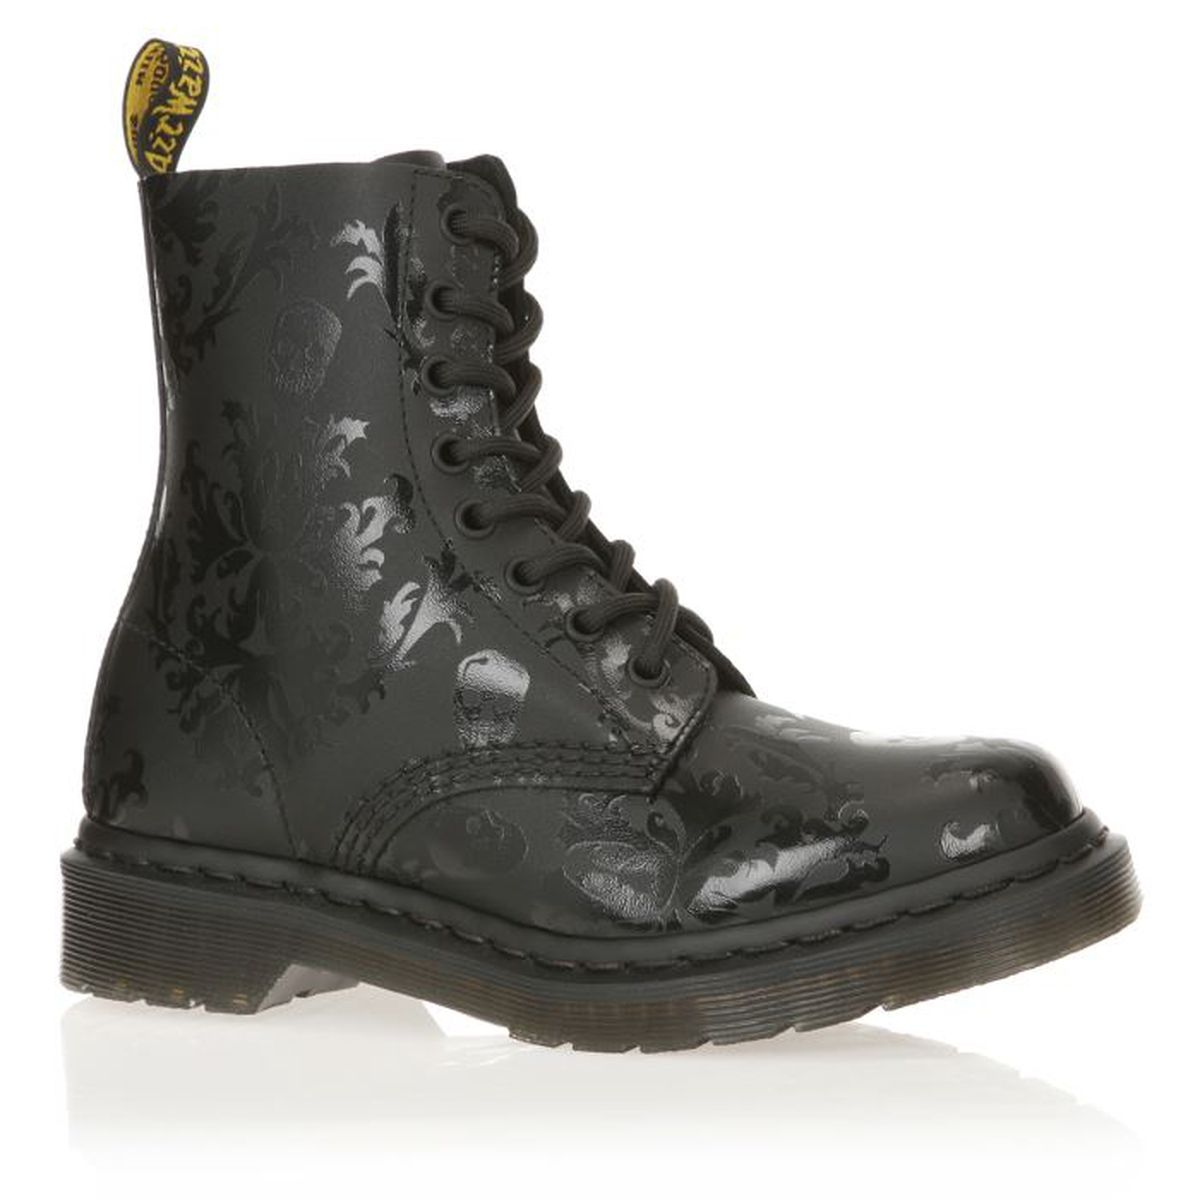 dr martens bottines cuir reinventd cassidy femme femme noir achat vente dr martens. Black Bedroom Furniture Sets. Home Design Ideas